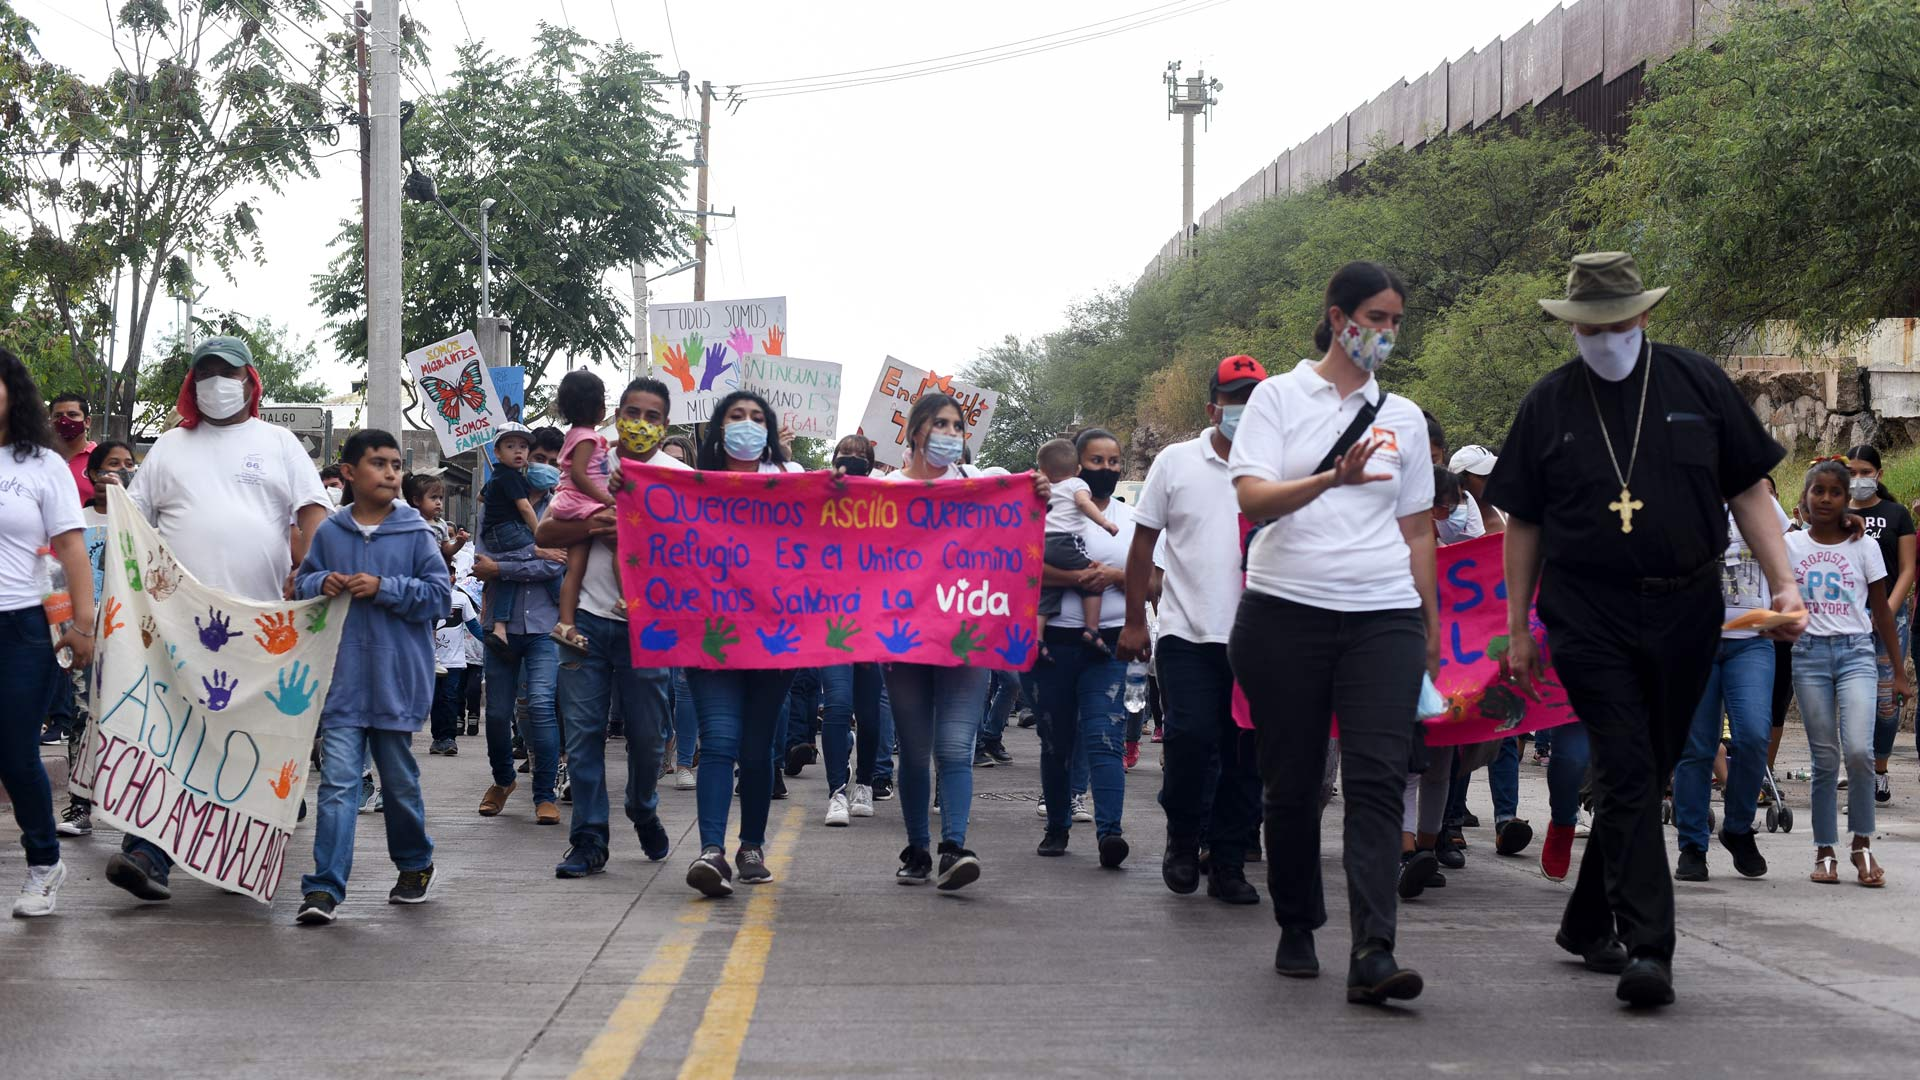 Migrants march toward the Deconcini Port of Entry in Nogales, Sonora in a demonstration asking President Joe Biden to restore the U.S. asylum process.